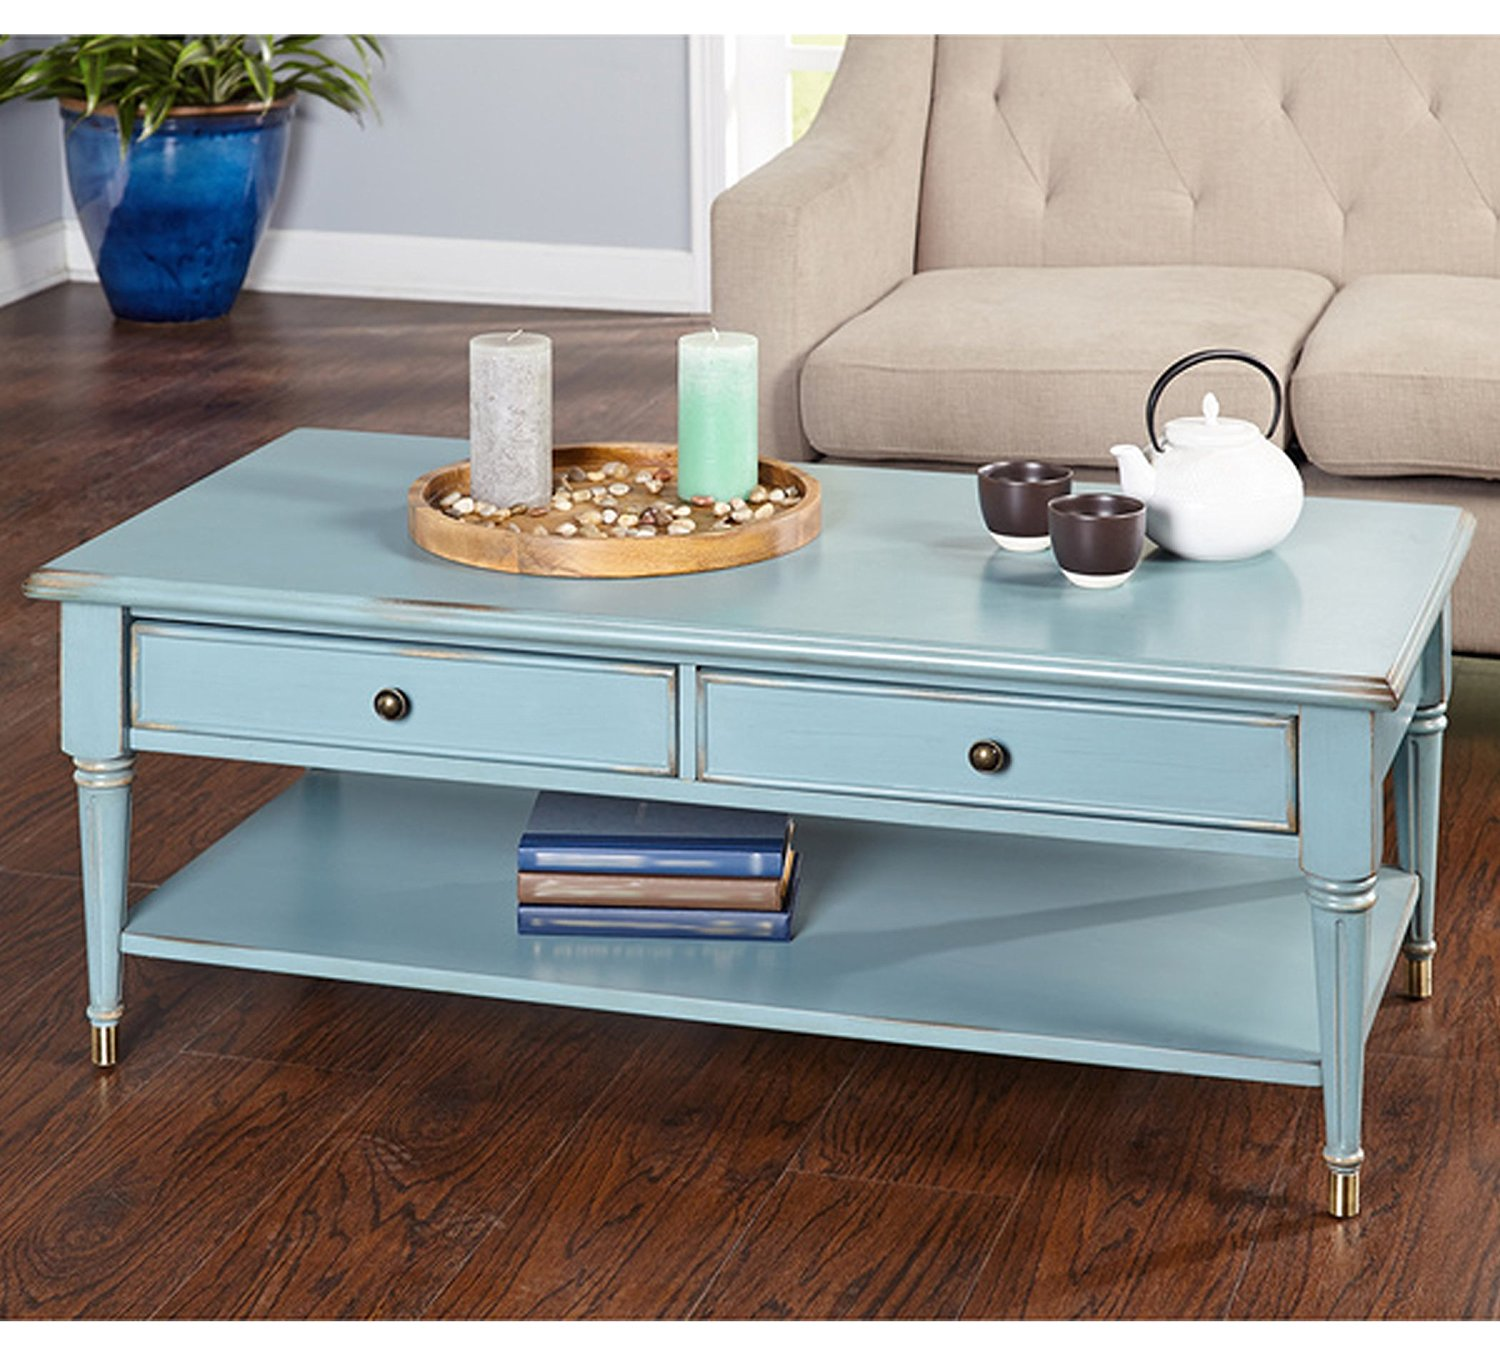 furniture antique distressed blue brass sideboards drawer accent table farmhouse coffee living room made solid wood legs with finish brackets copper hairpin console pier white